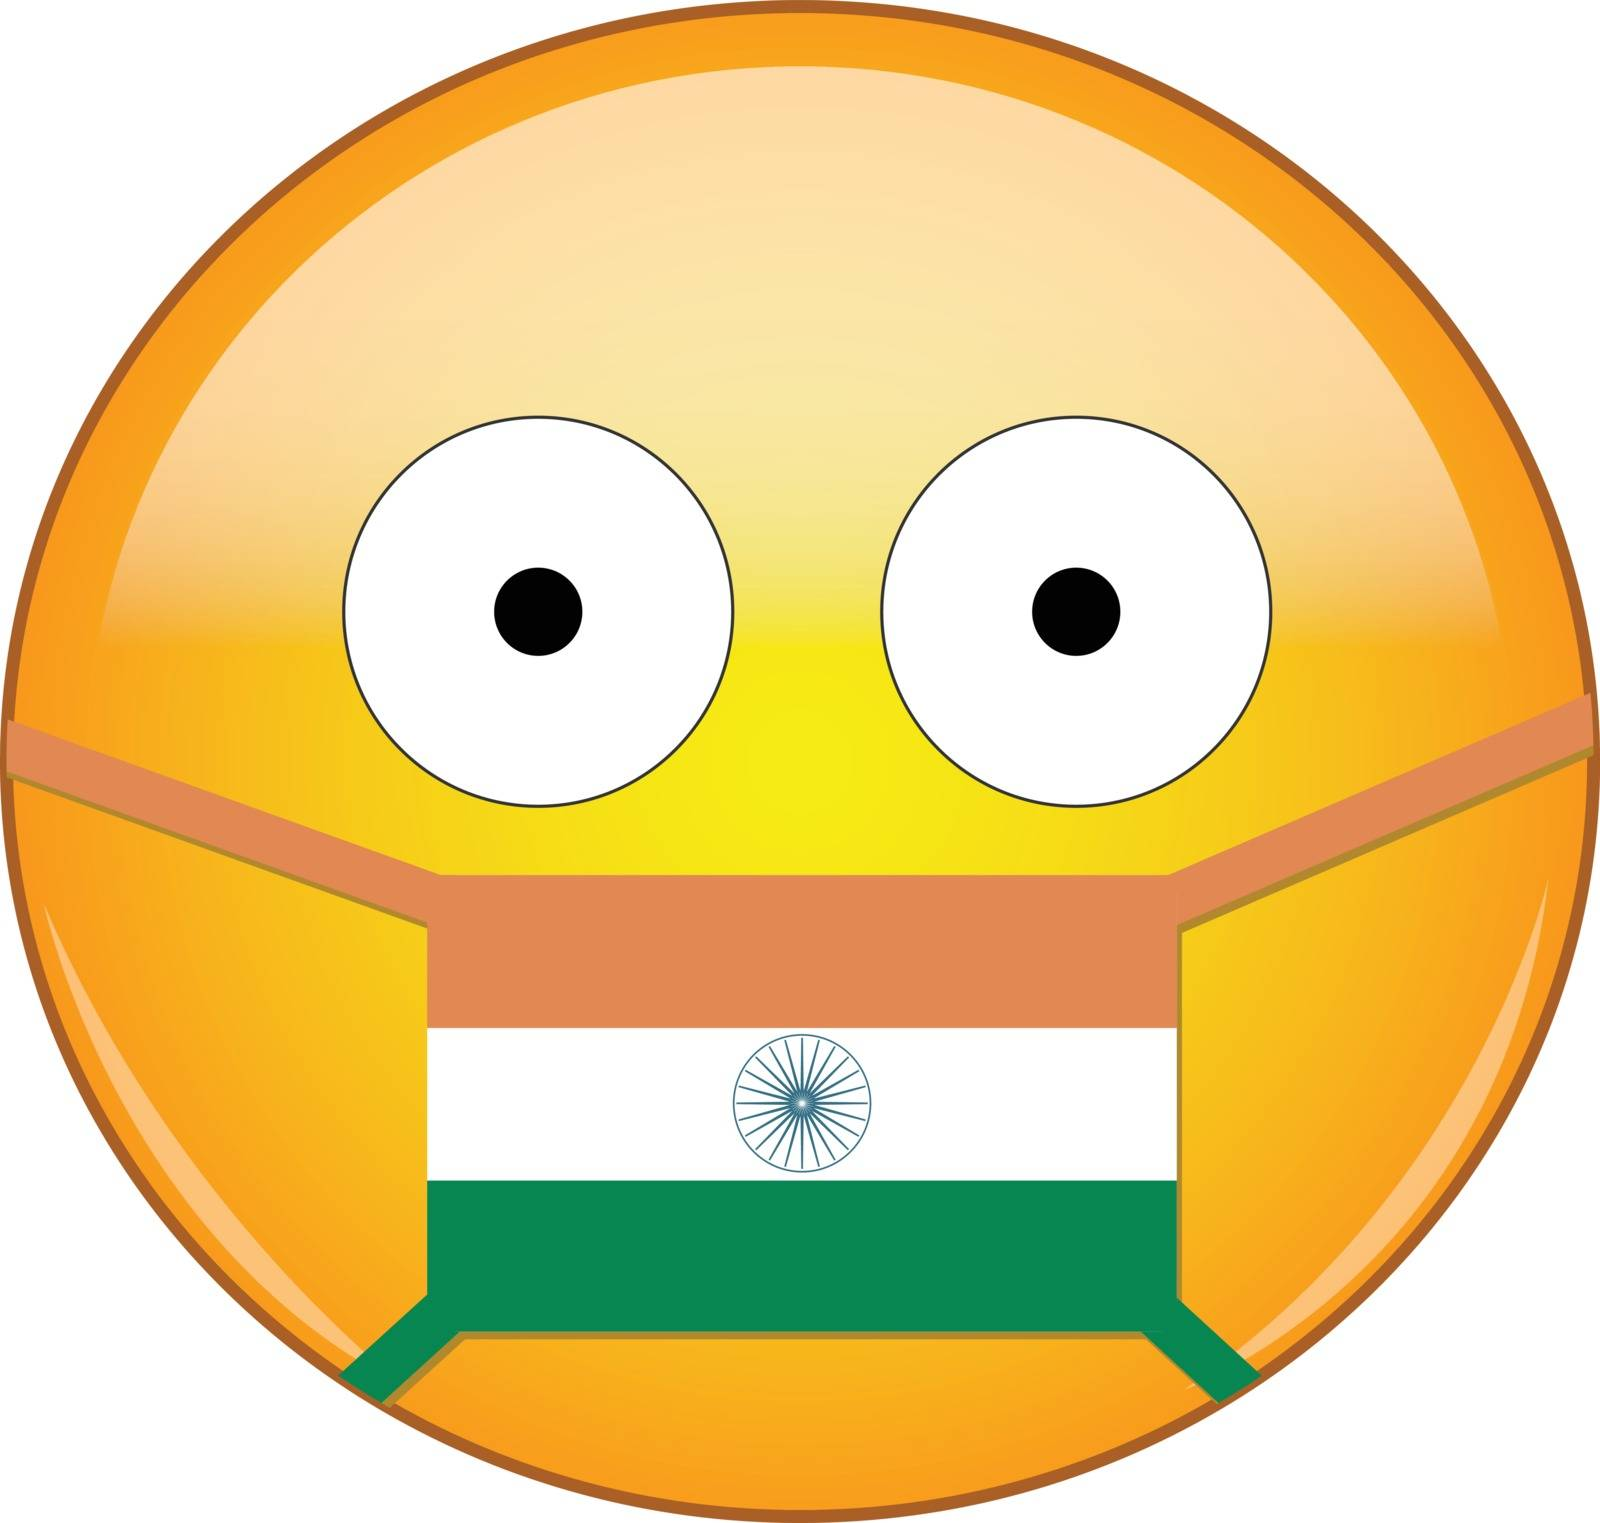 Indian emoji in a medical mask protecting from SARS, coronavirus, bird flu and other viruses, germs and bacteria and contagious disease as well as toxic smog and air pollution.